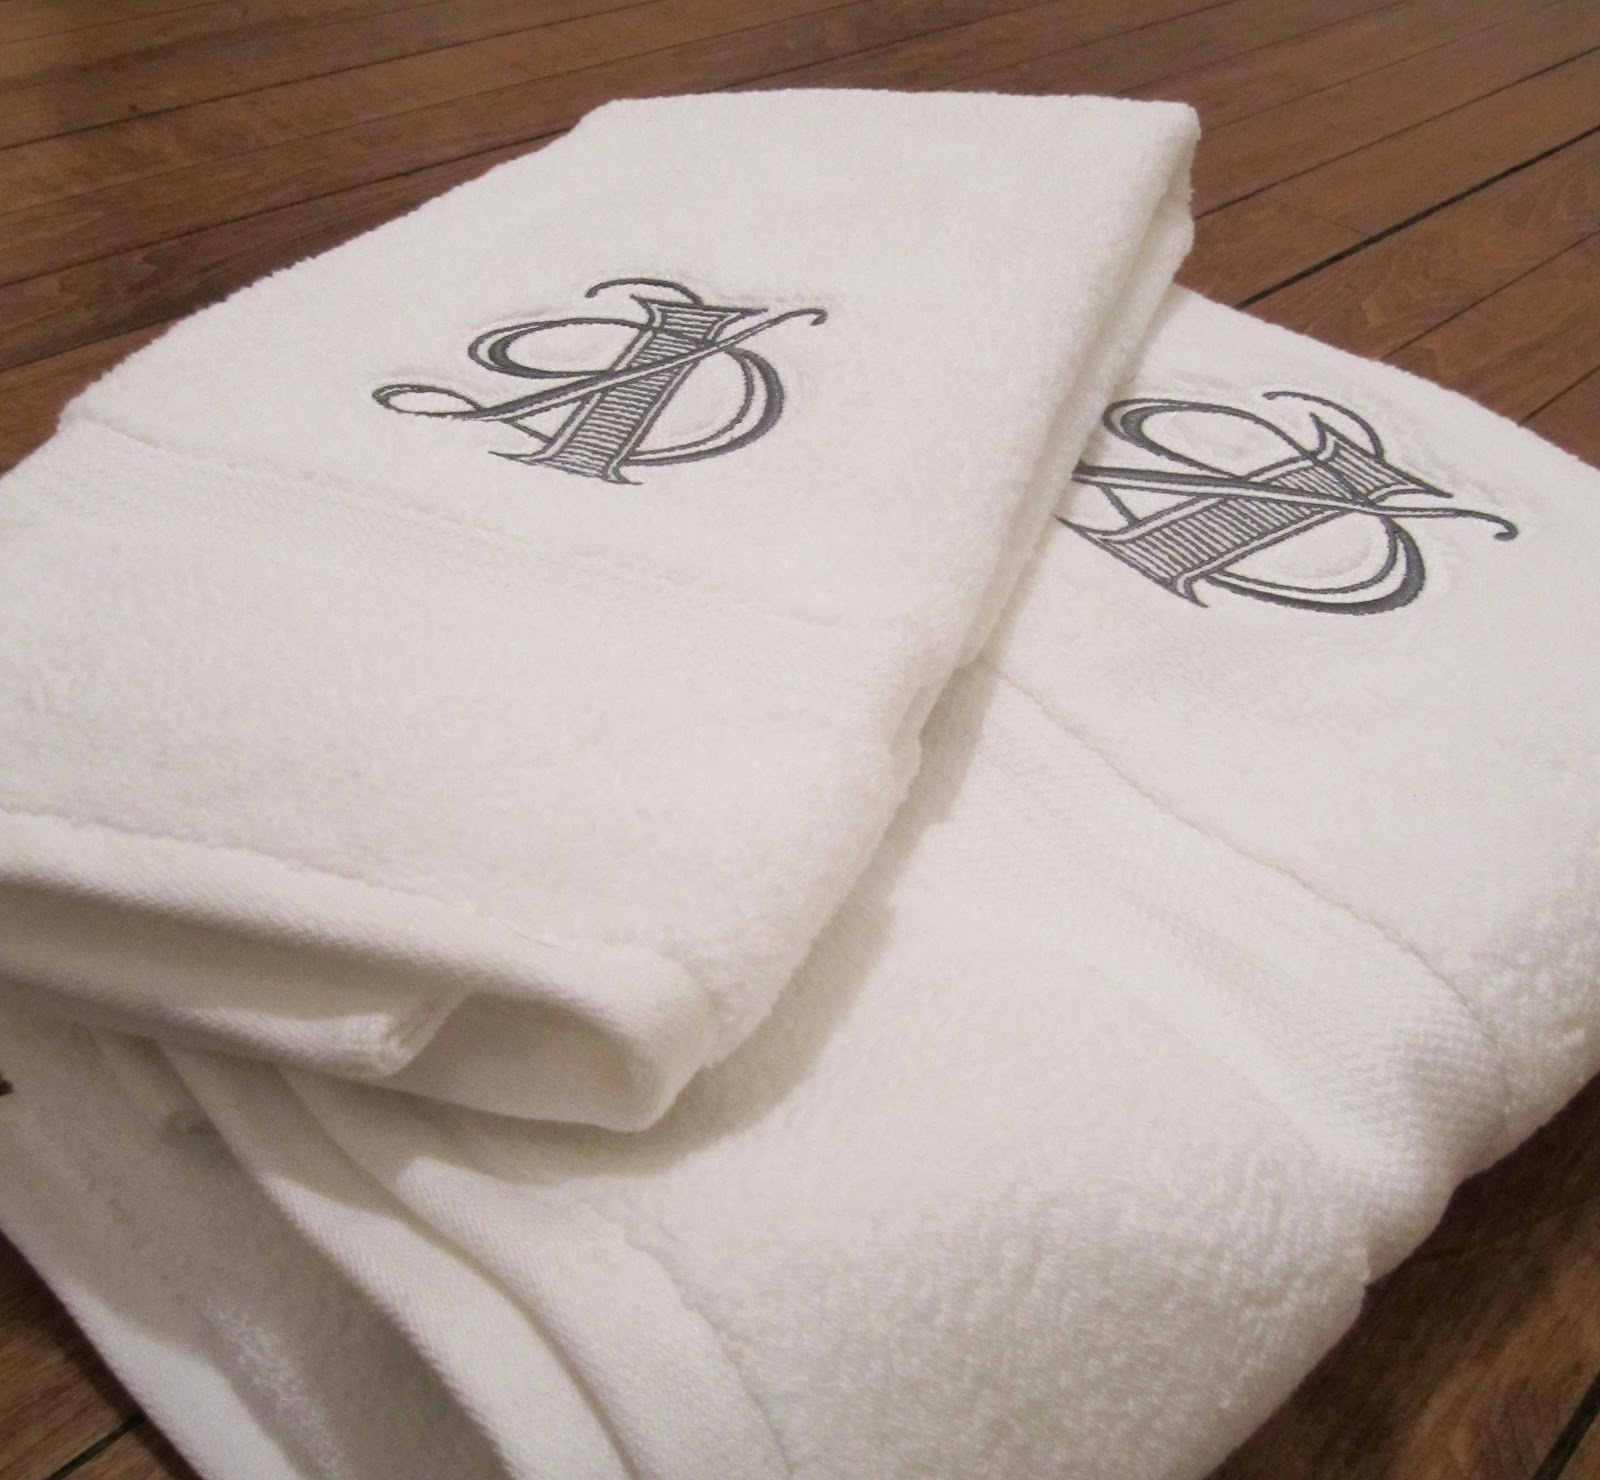 Tailored: New Design: Custom Monogram Embroidered Towels